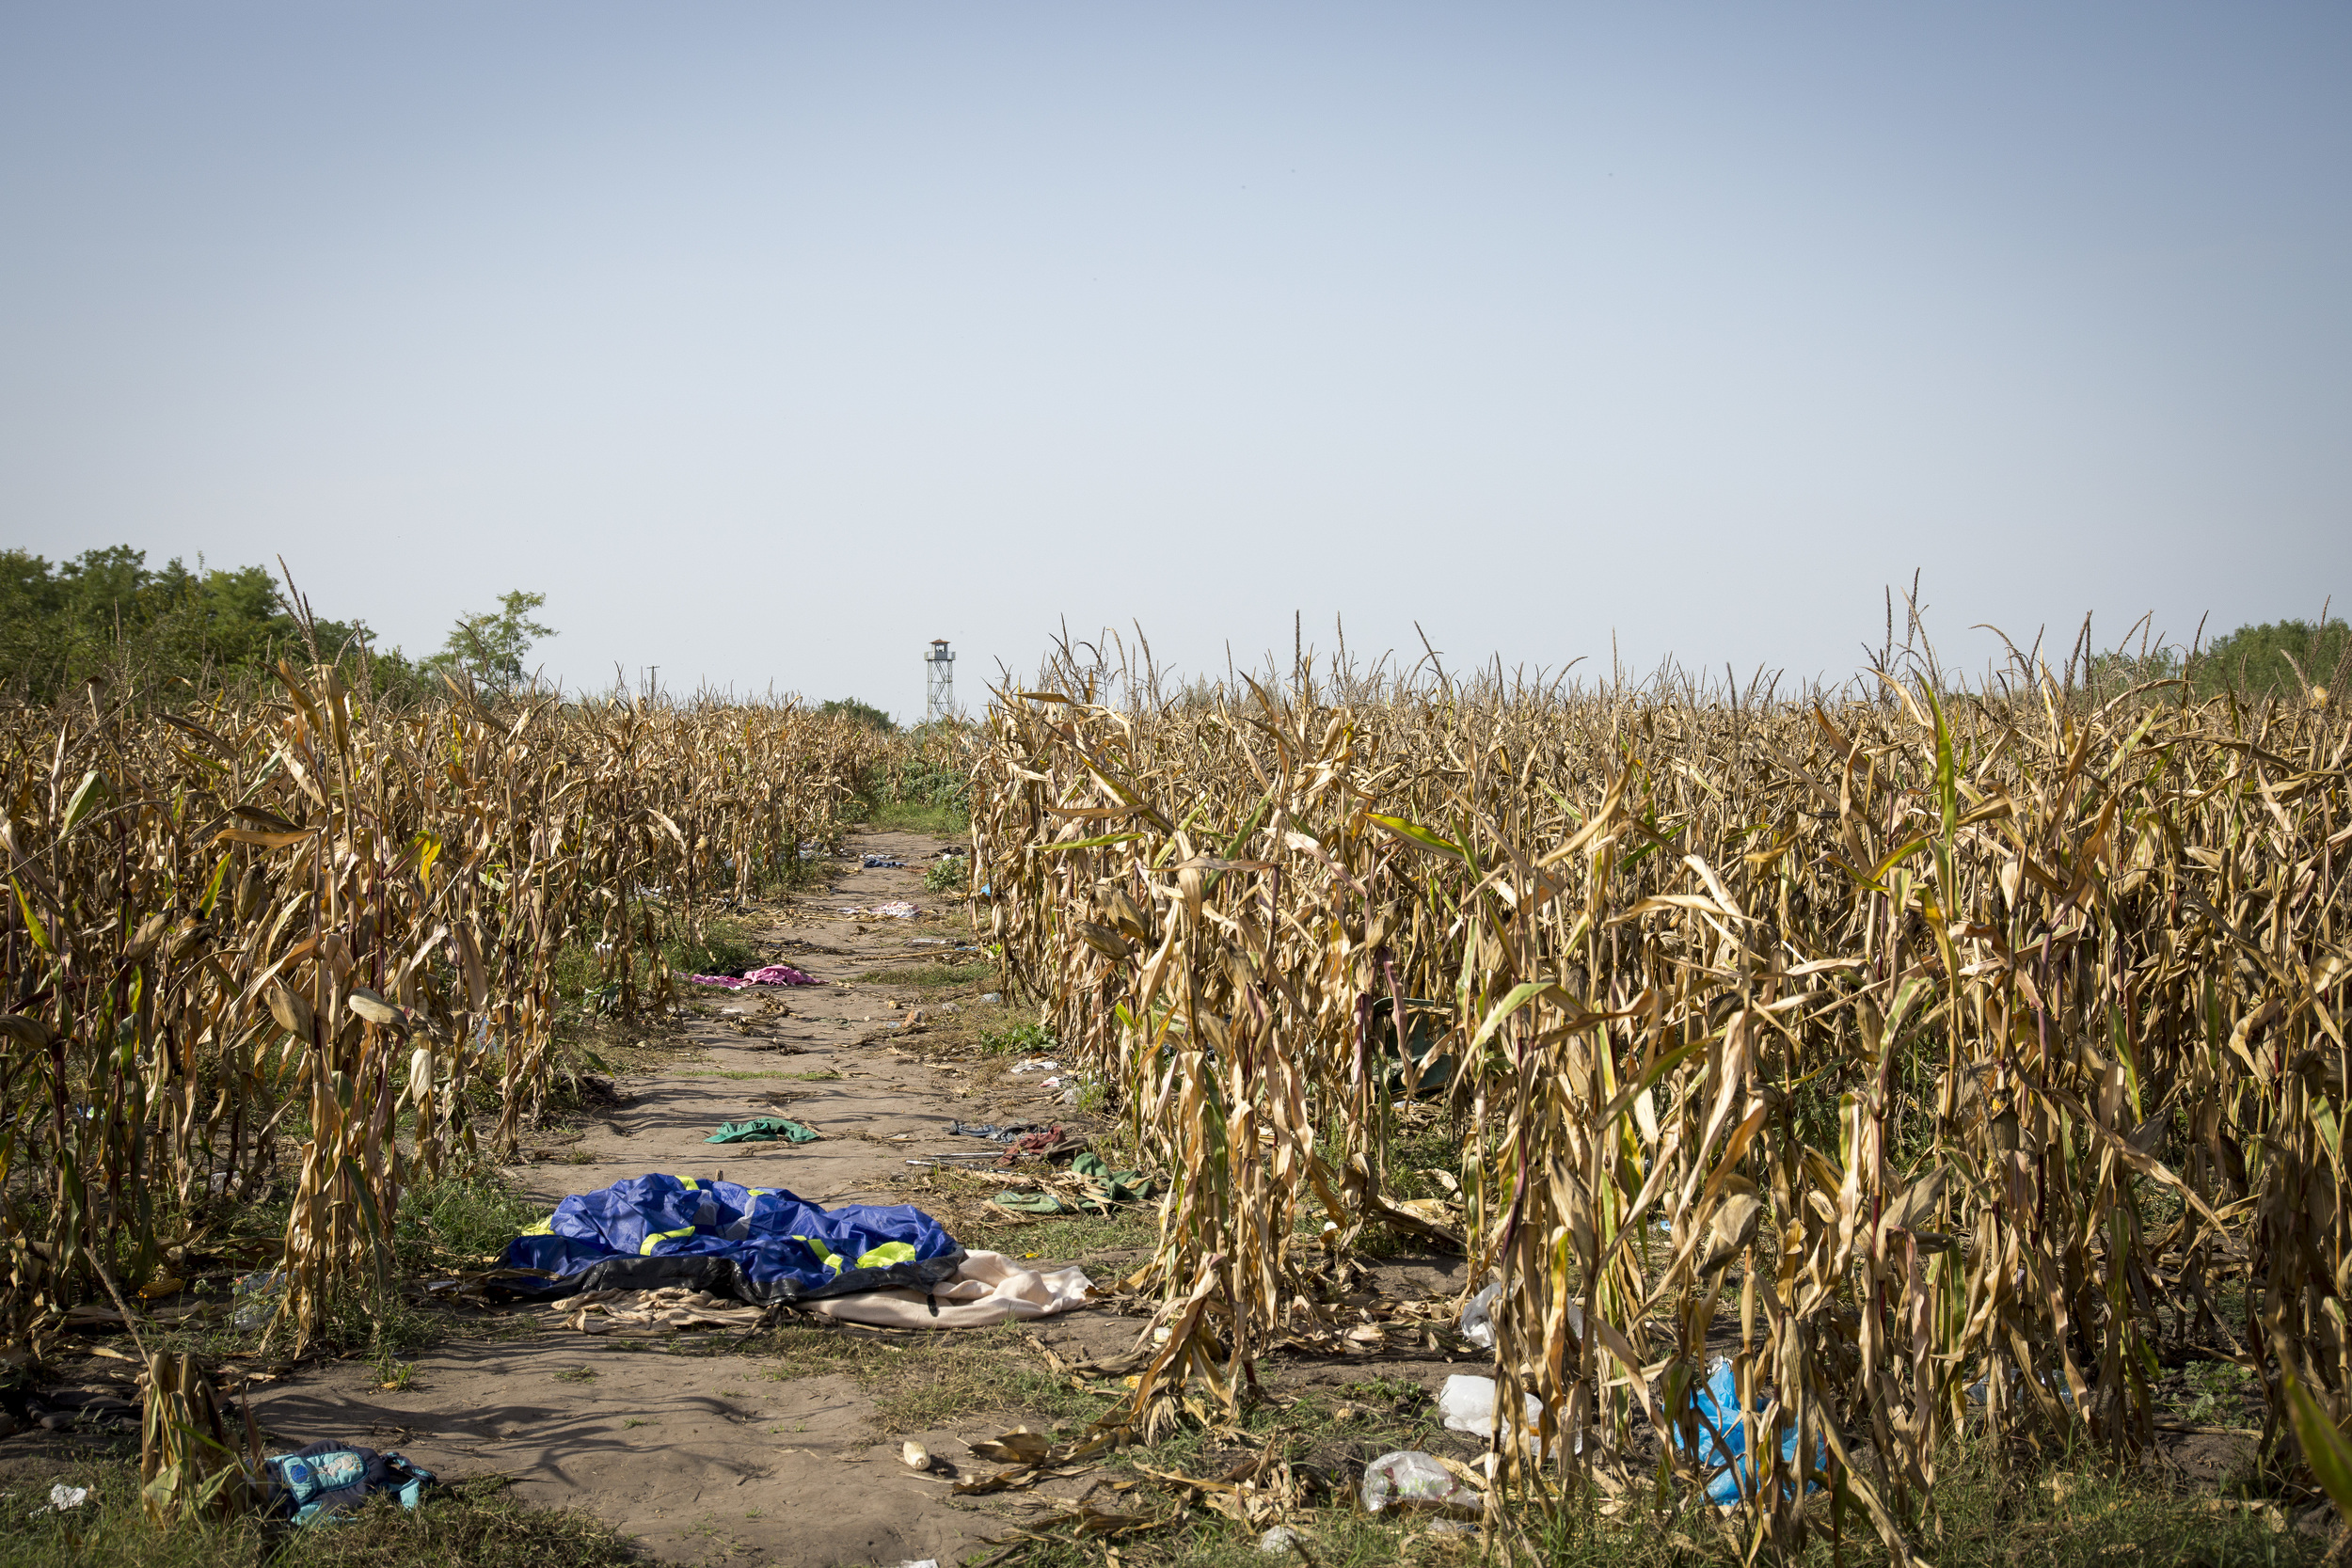 Through this cornfield many fled from the police. Now it is just a tent, trash and shoe prints left.